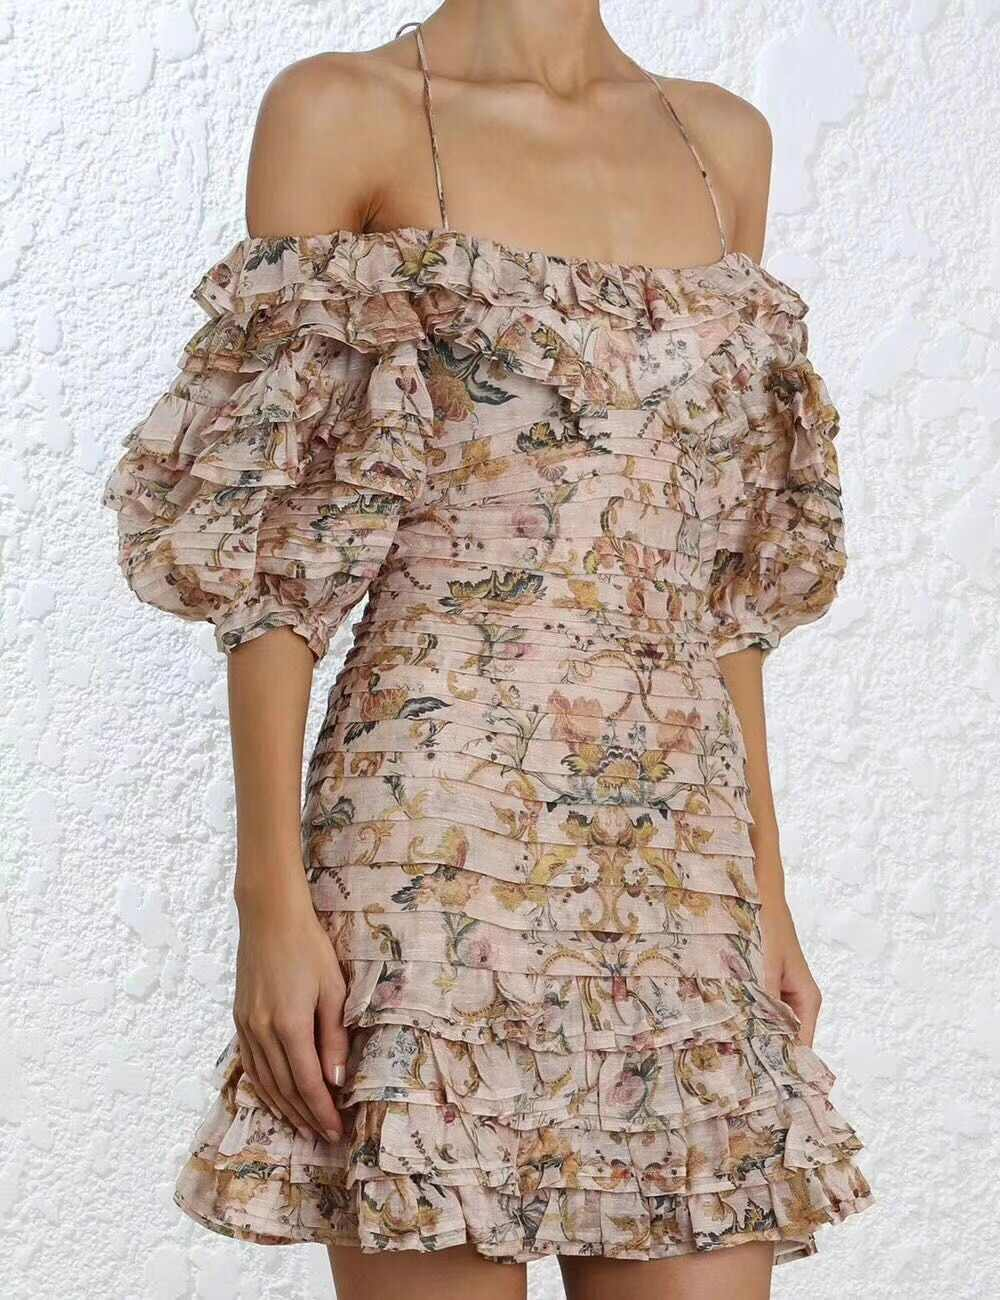 758a3a1a89207 Women Painted Heart Folds Ruffle Dress Halter Tie Multicolor Peach Tapestry  Off Shoulder Mini Dress